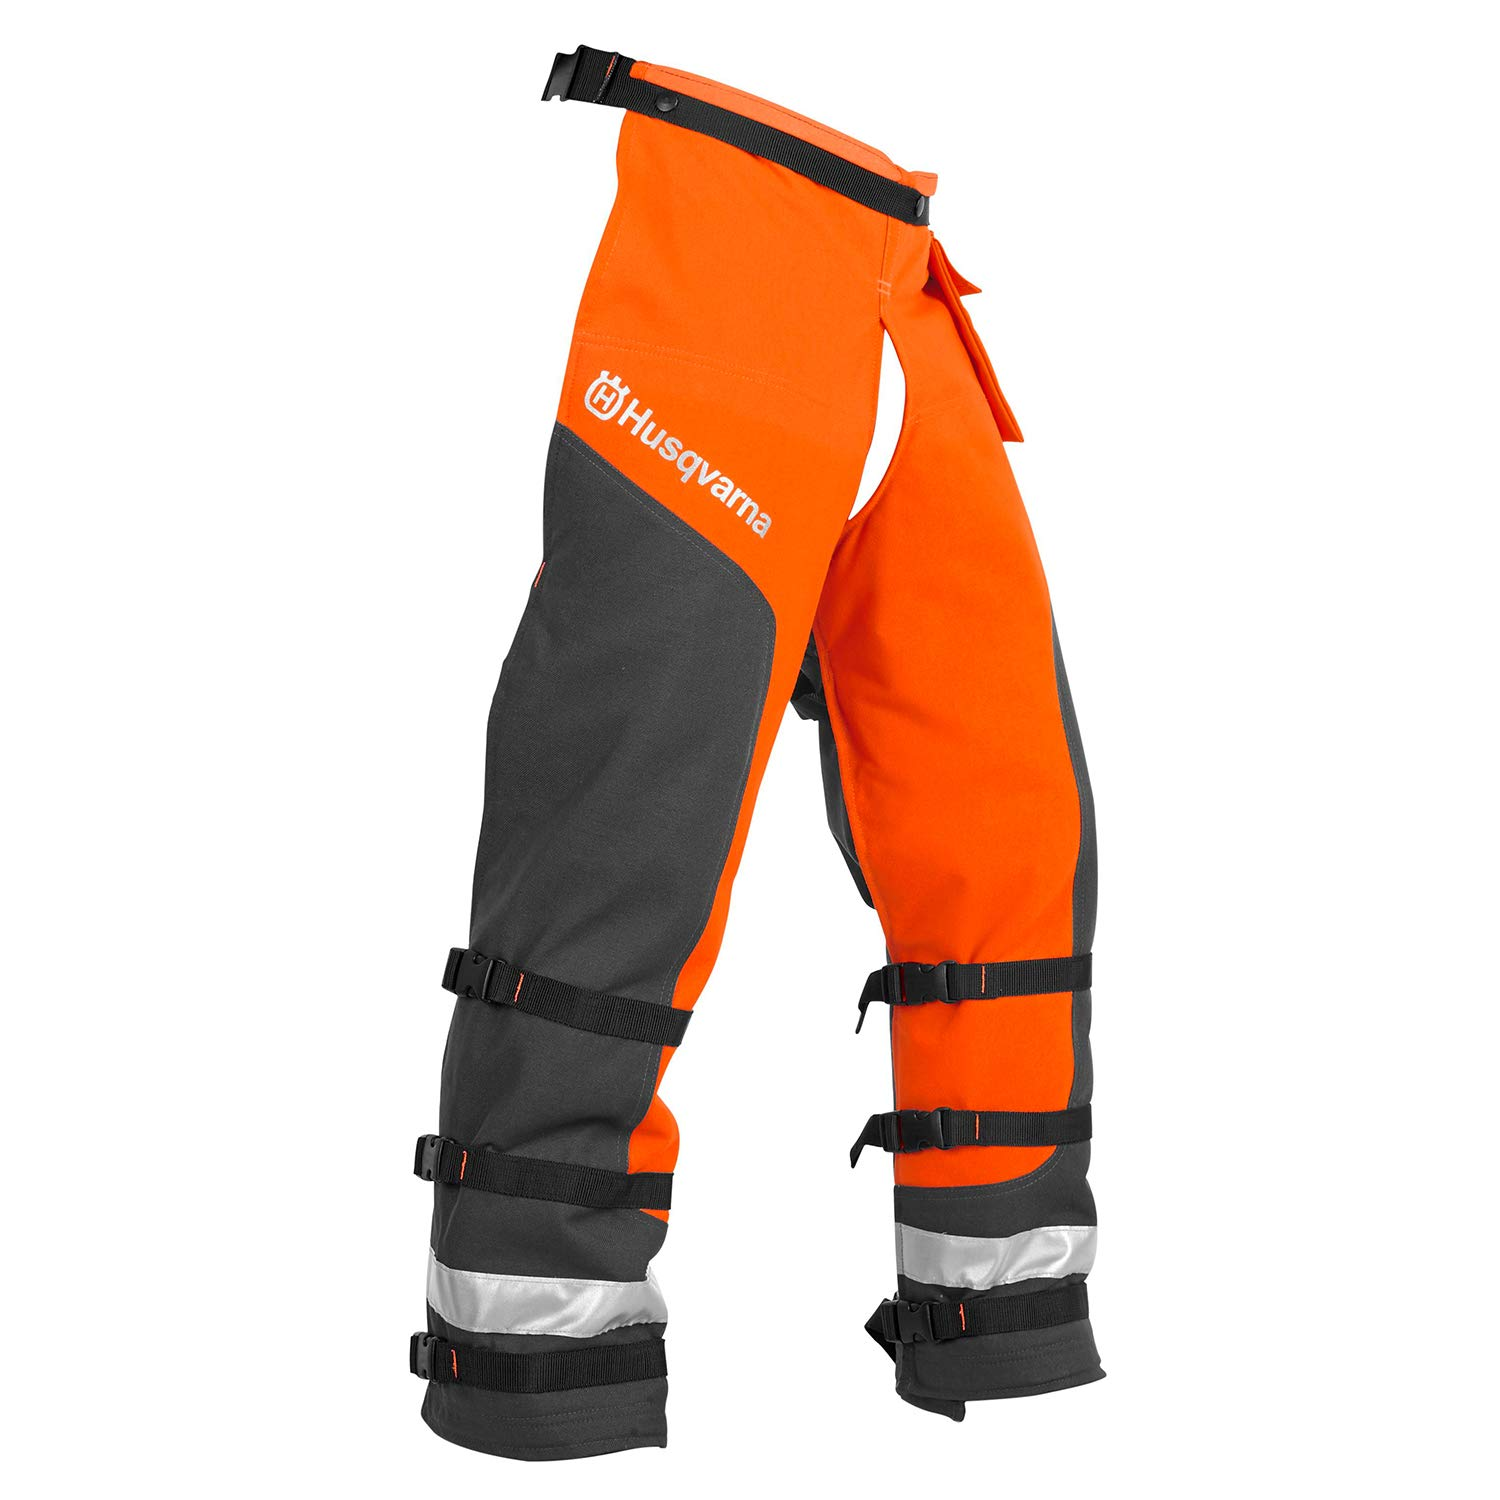 Husqvarna Technical Apron Wrap Chap, 40 to 42-Inch by Husqvarna